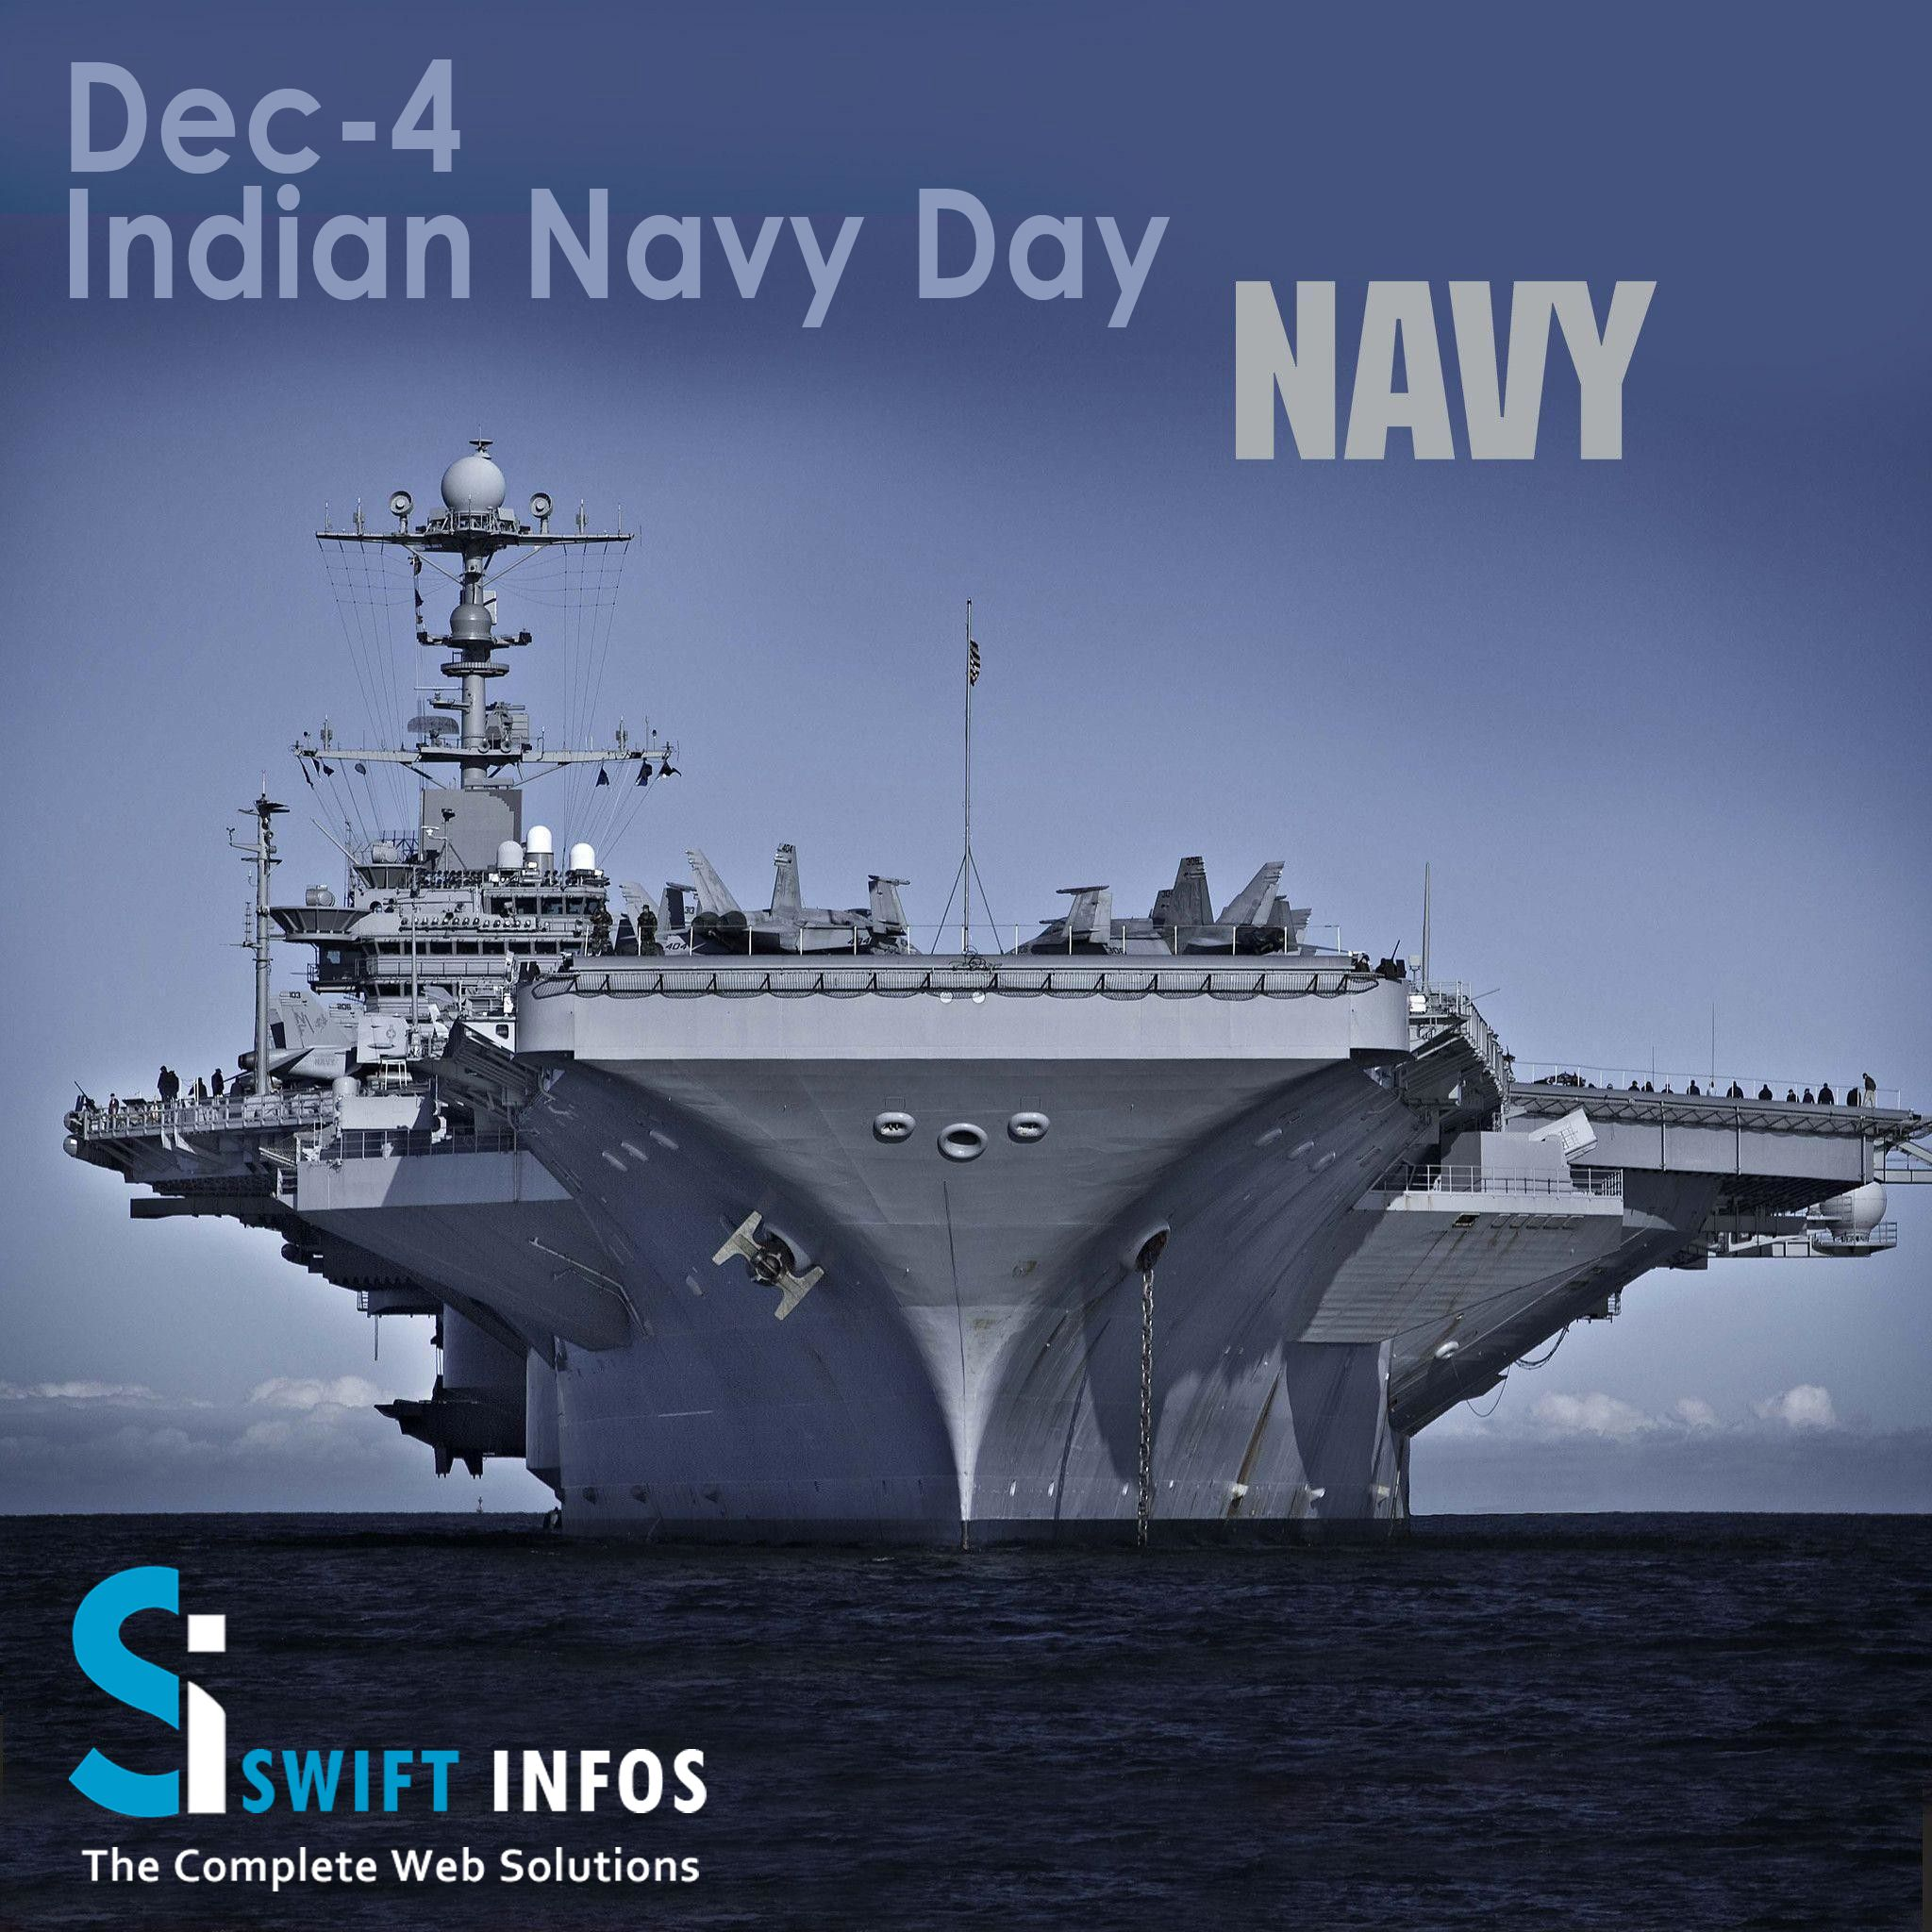 4 December Indian Navy Day Us Navy Wallpaper Indian Navy Ships Aircraft Carrier